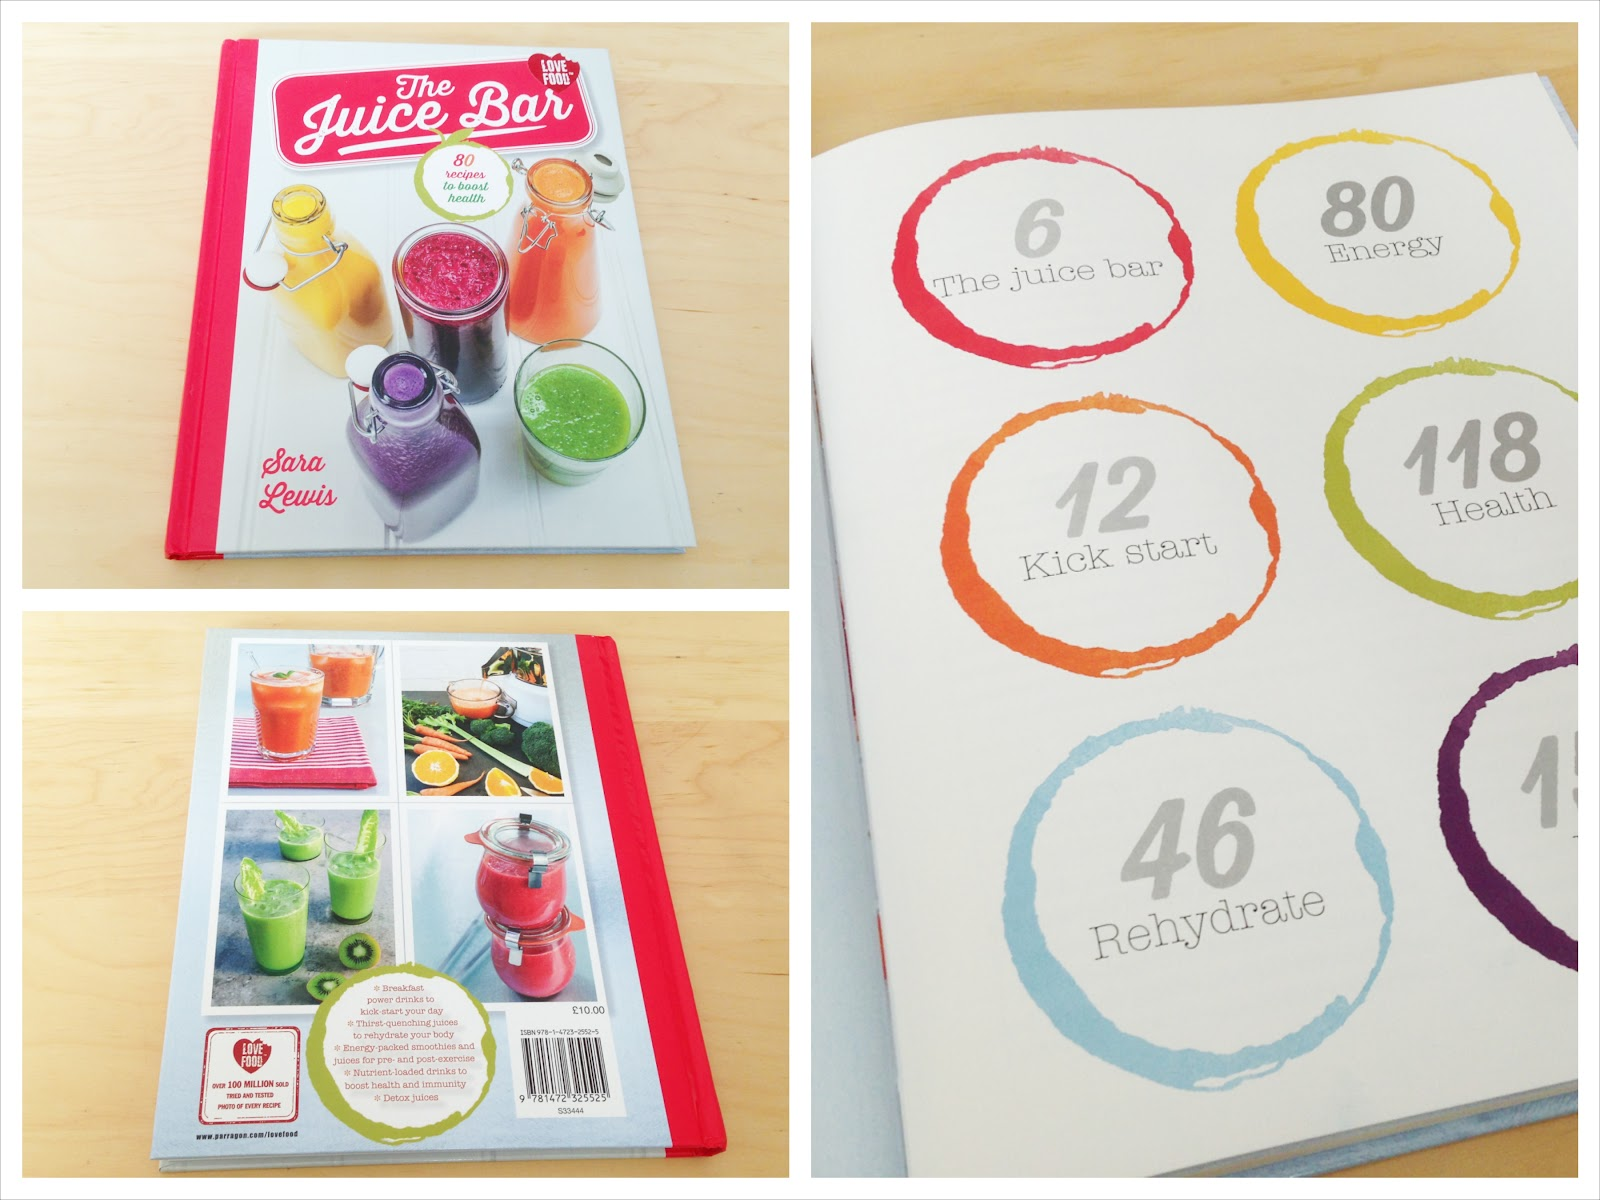 The Juice Bar [Book Review]